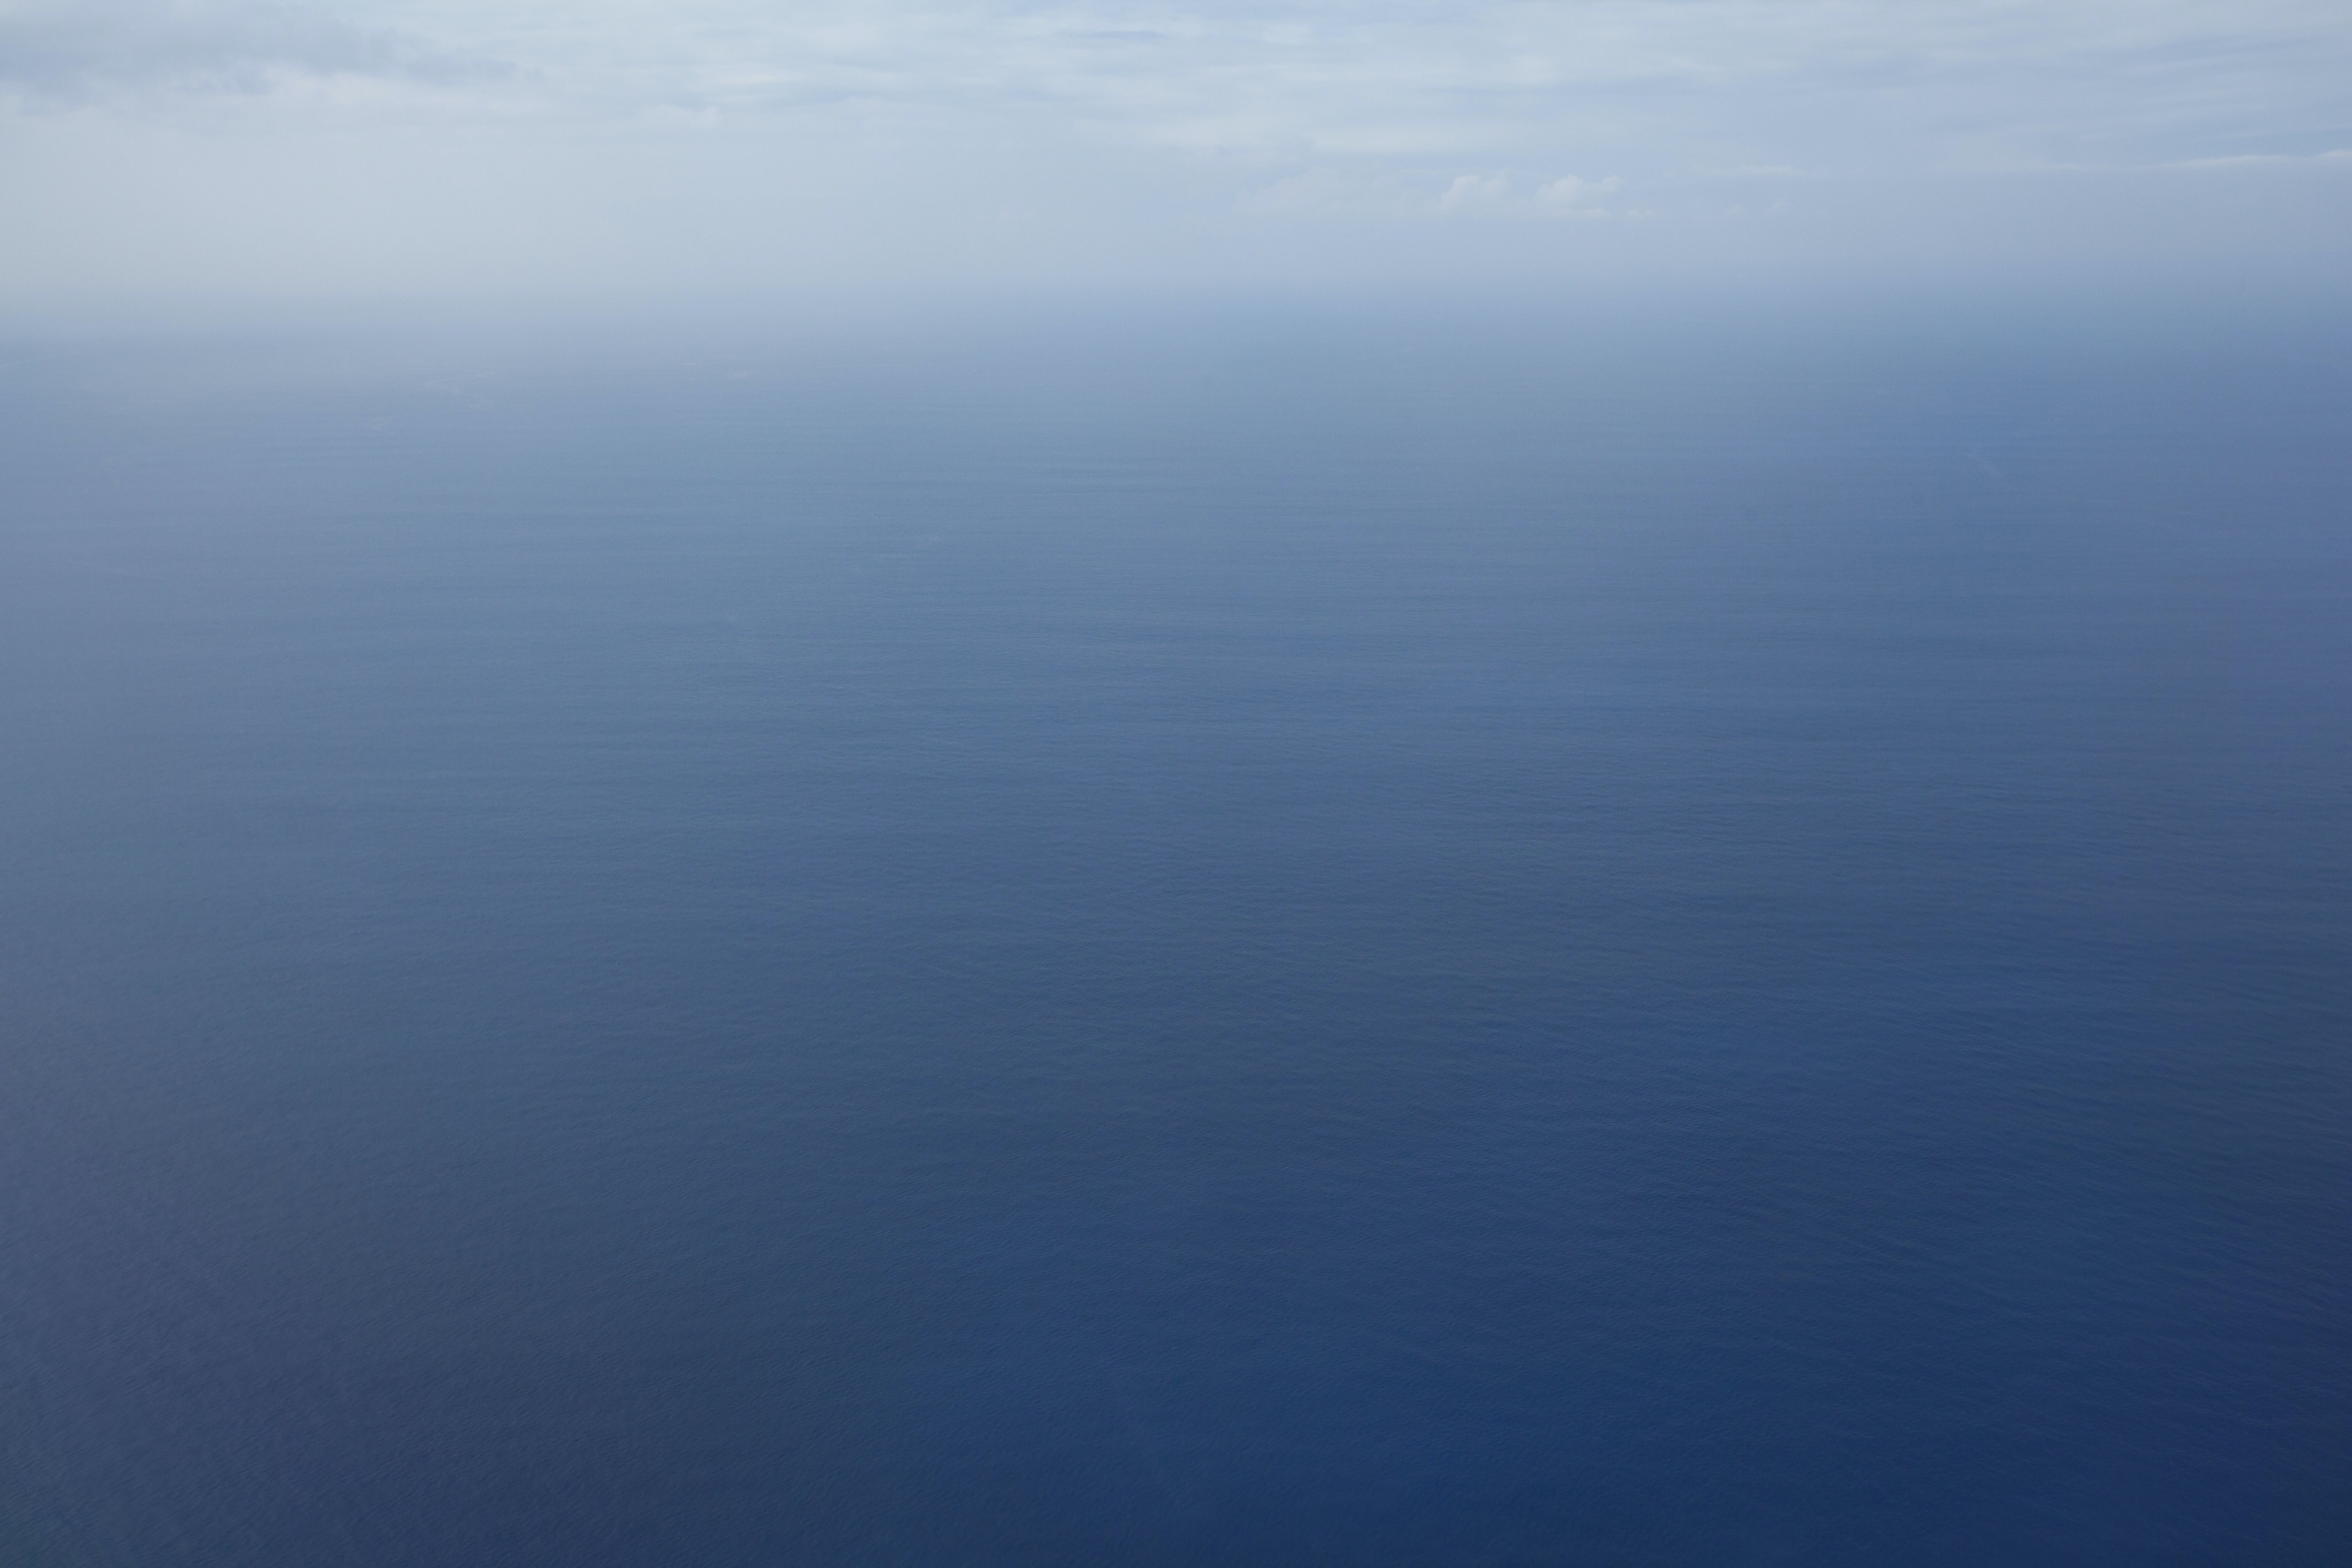 Still ocean waters disappear into the blue horizon covered in clouds